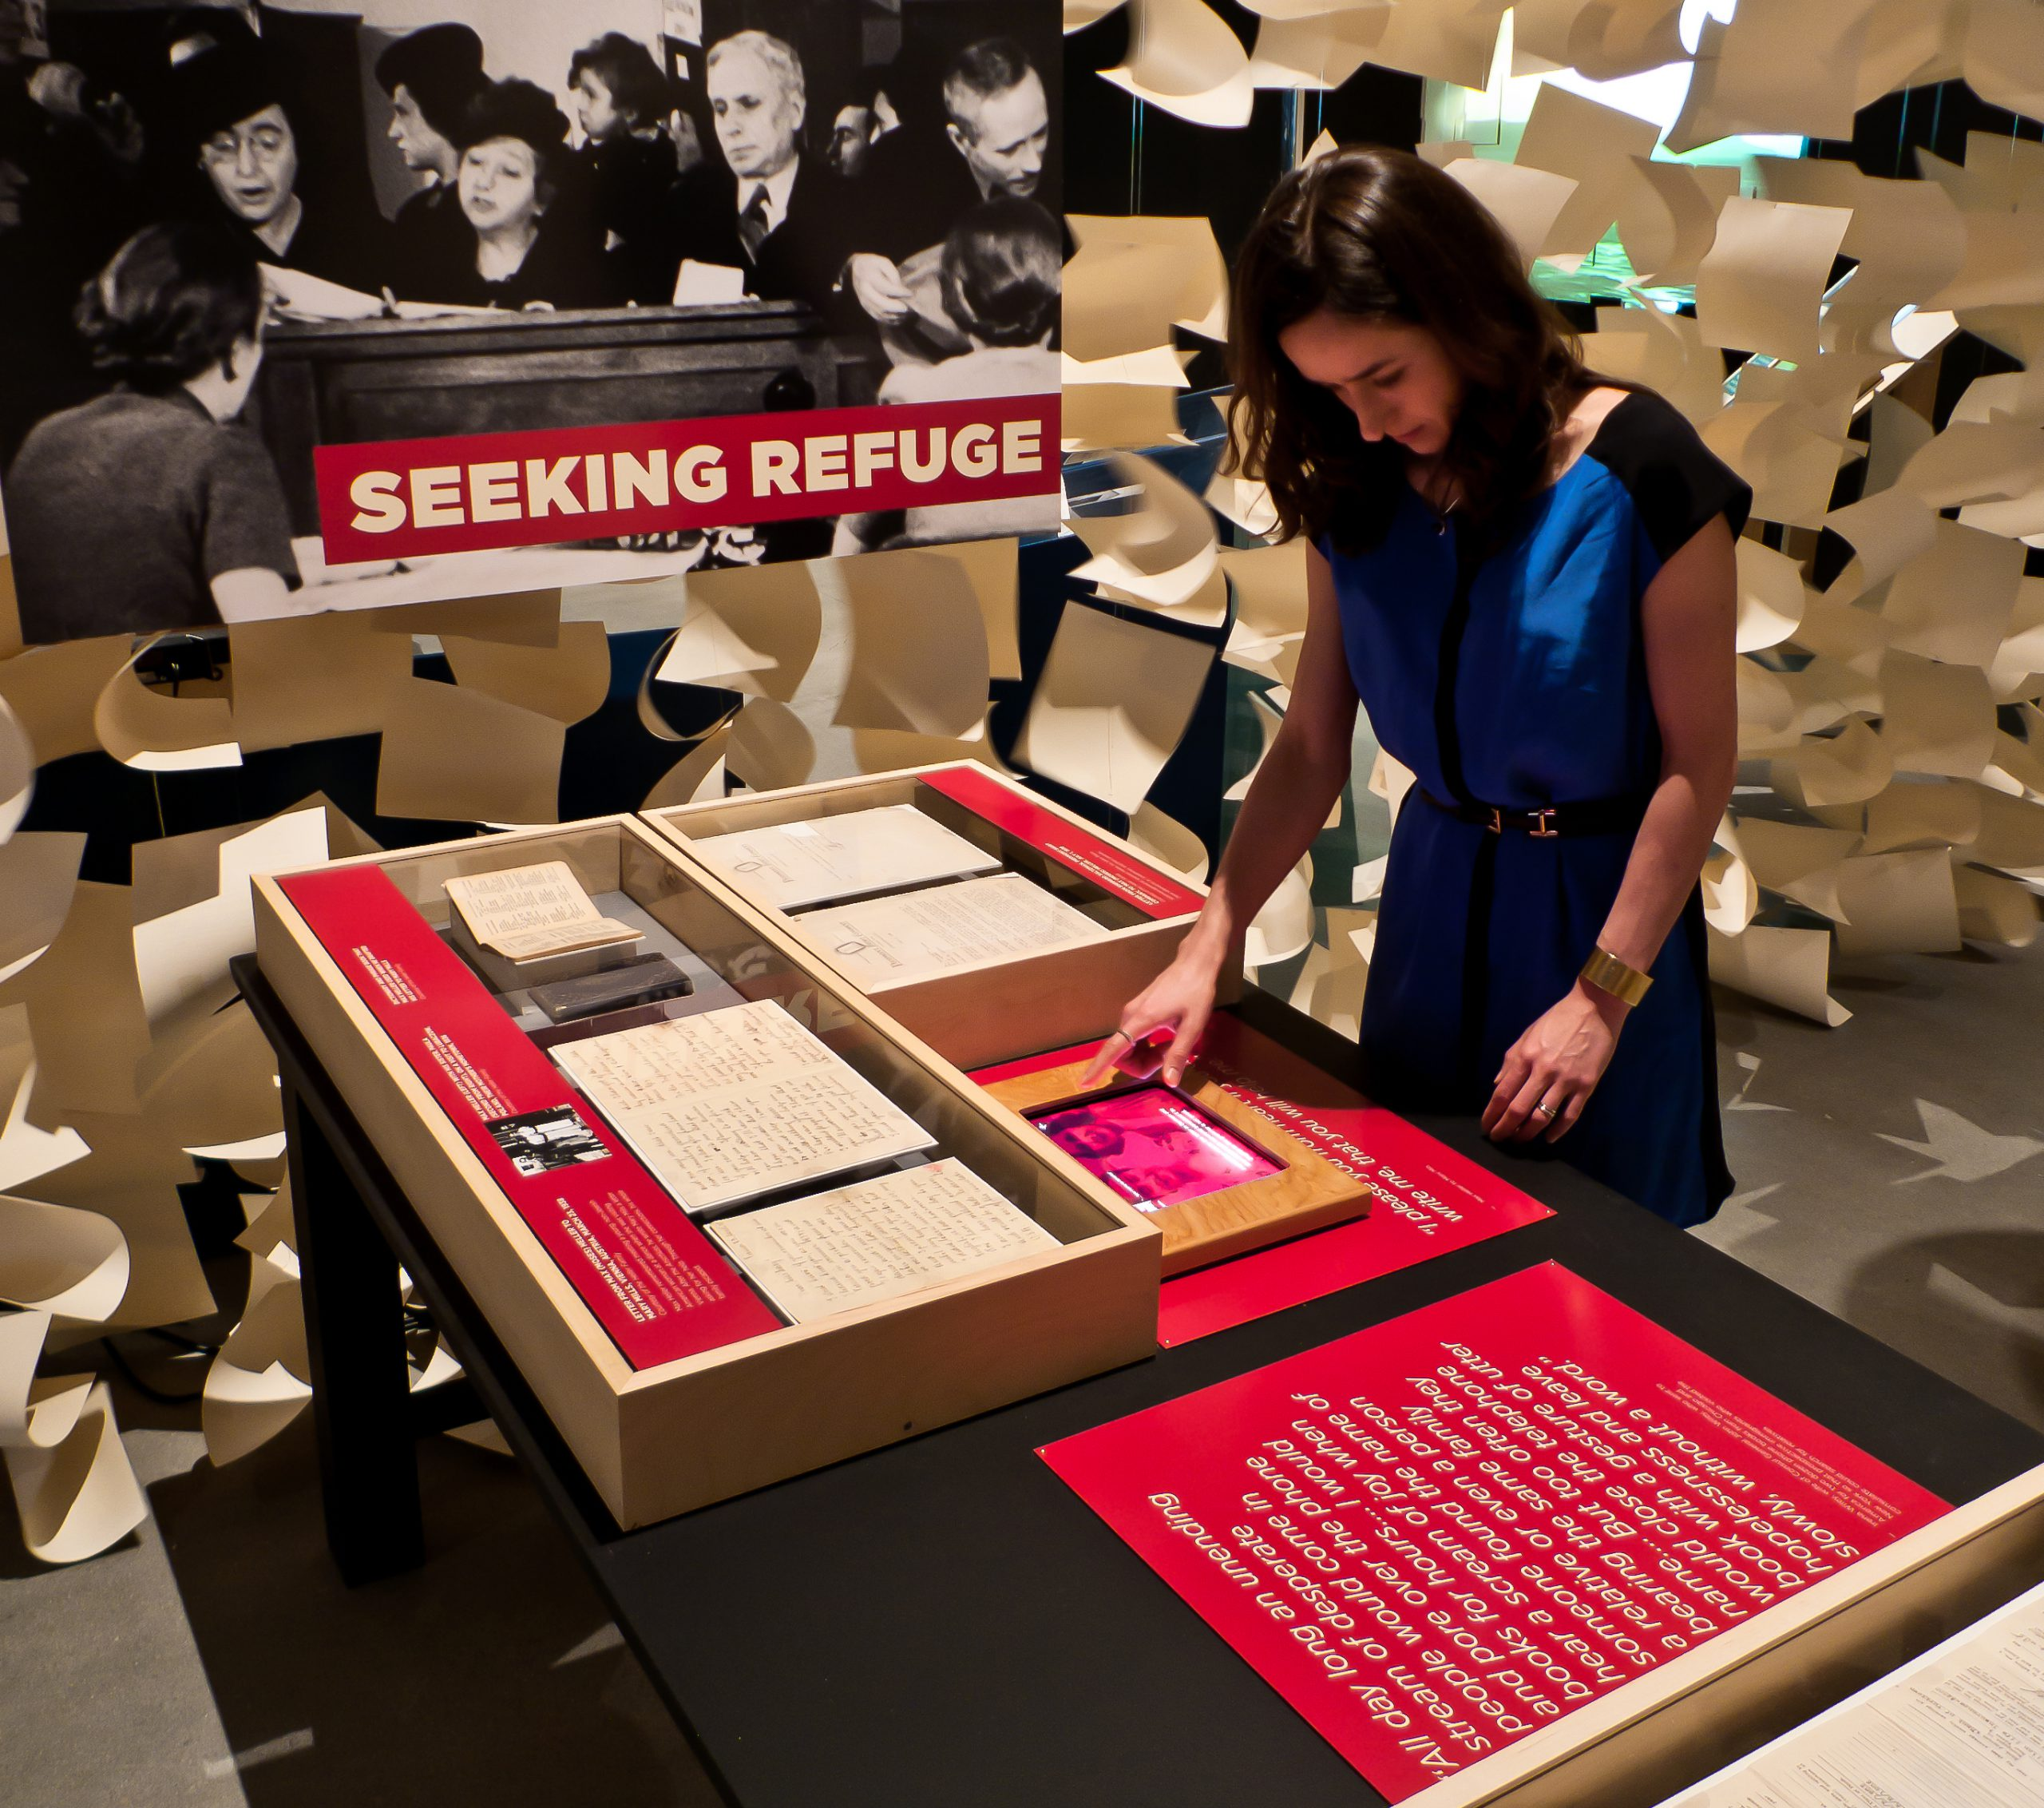 Project image 3 for Against the Odds, Museum of Jewish Heritage